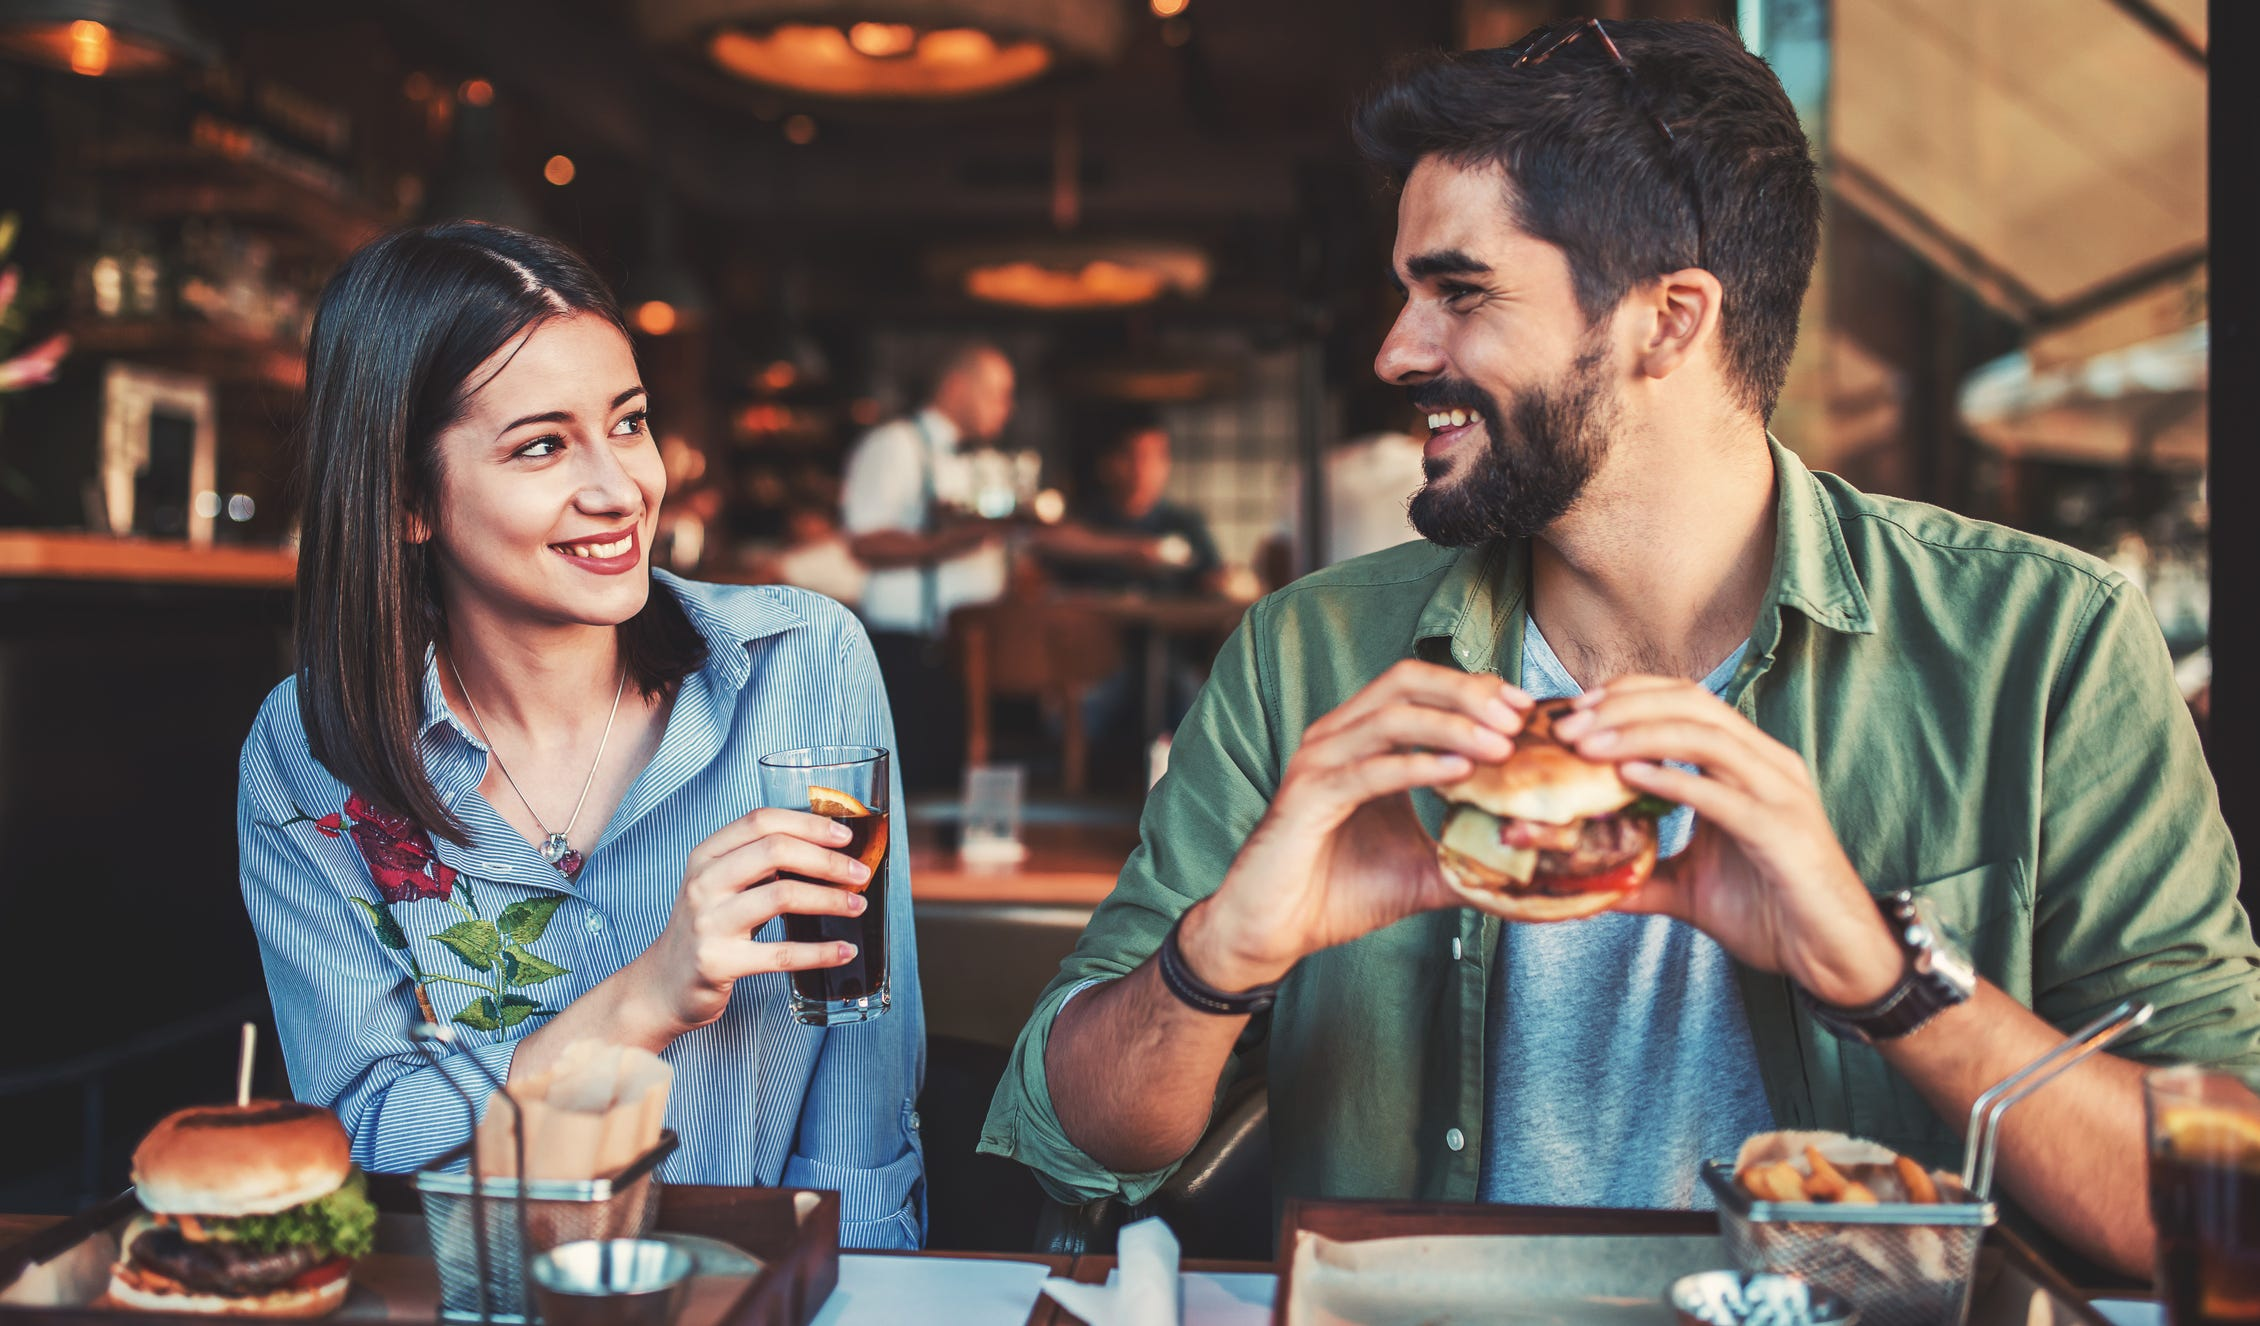 Financial tips for Millennials, Gen Z who say dating costs too much